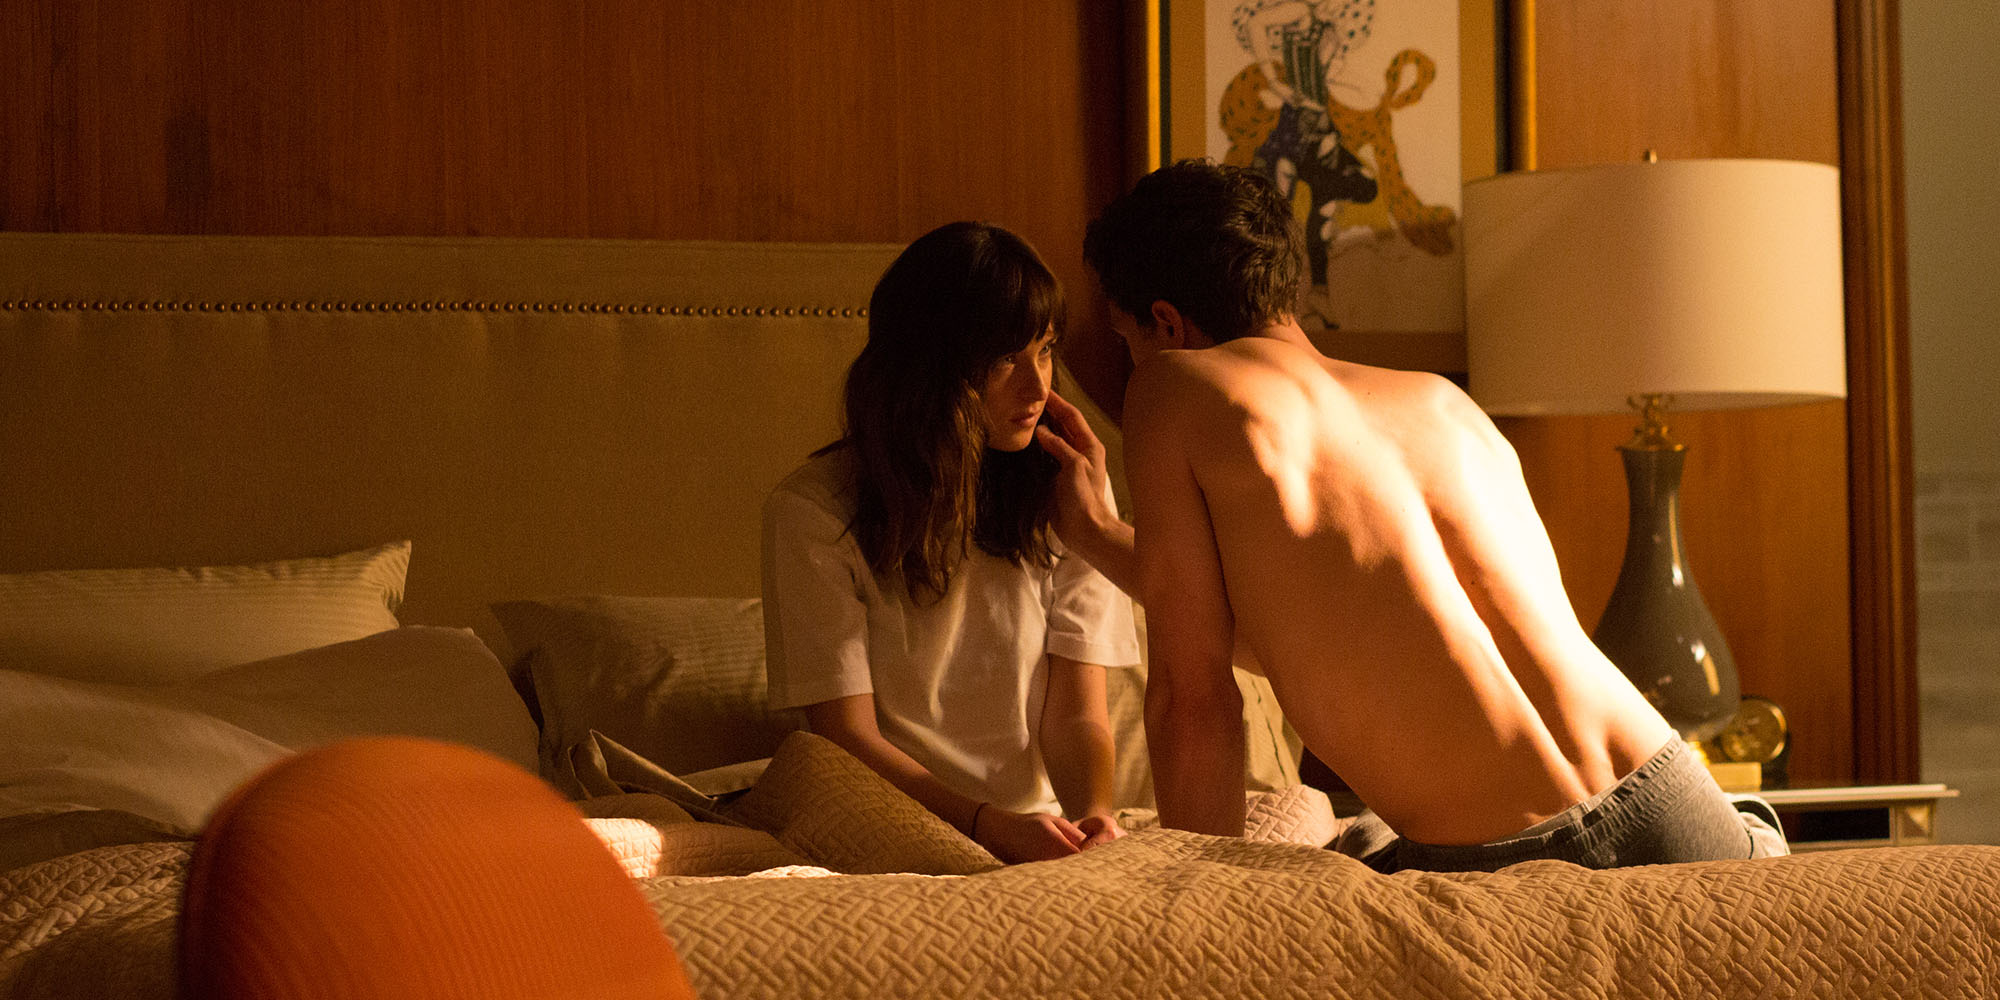 Fifty-Shades-of-Grey_31